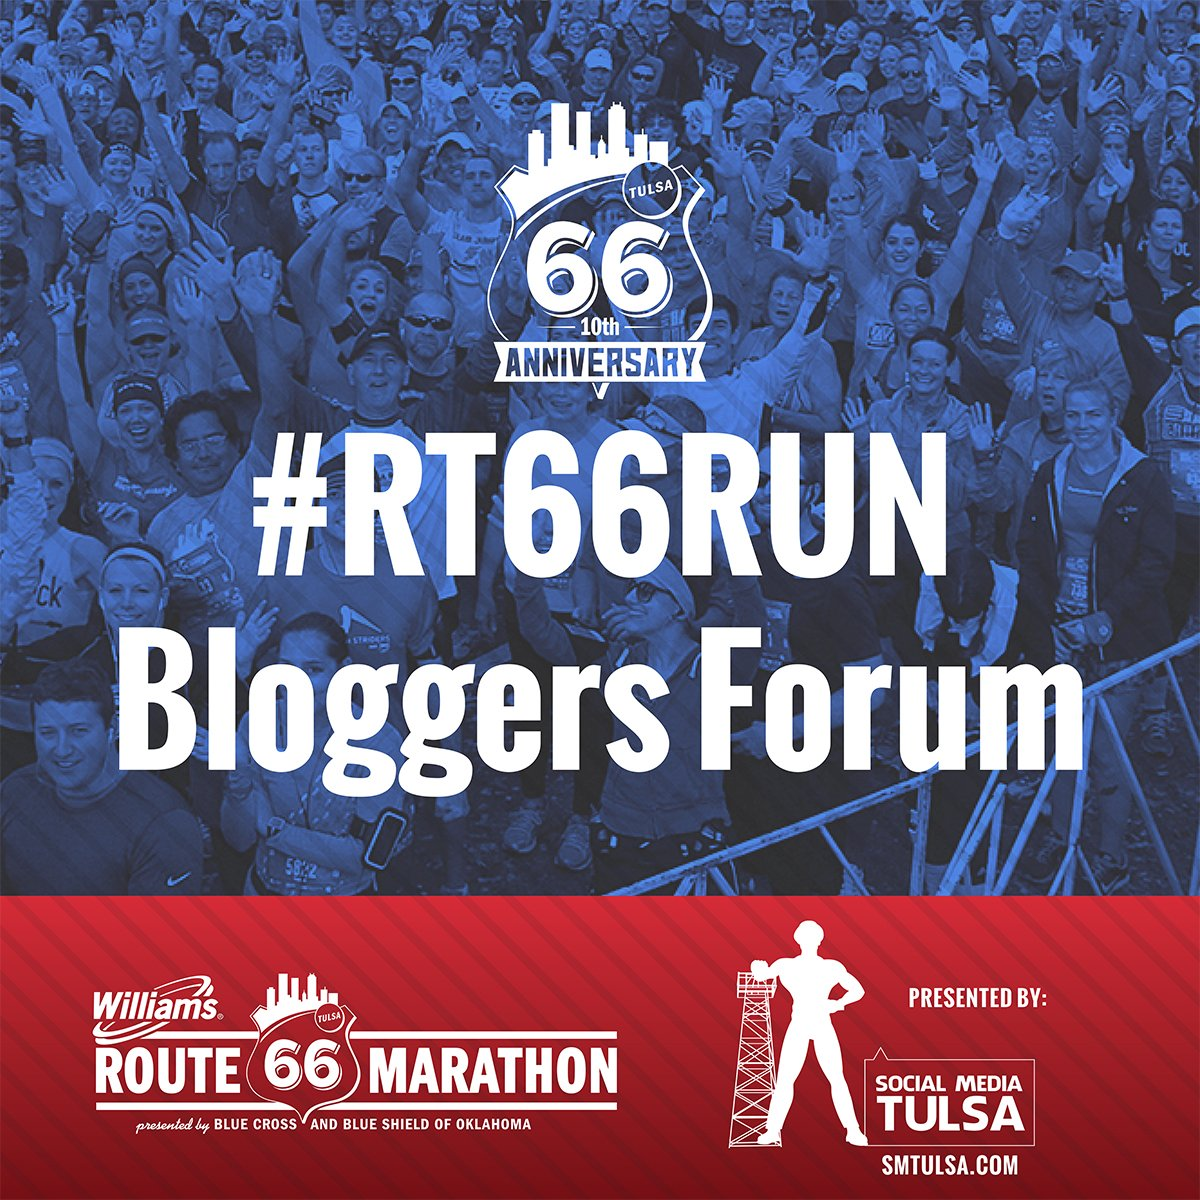 Tweet your Questions #RT66Run Bloggers Forum https://t.co/2oPnqrRKpJ sponsored by @SMTULSA #smtulsa https://t.co/roNglxGzB8